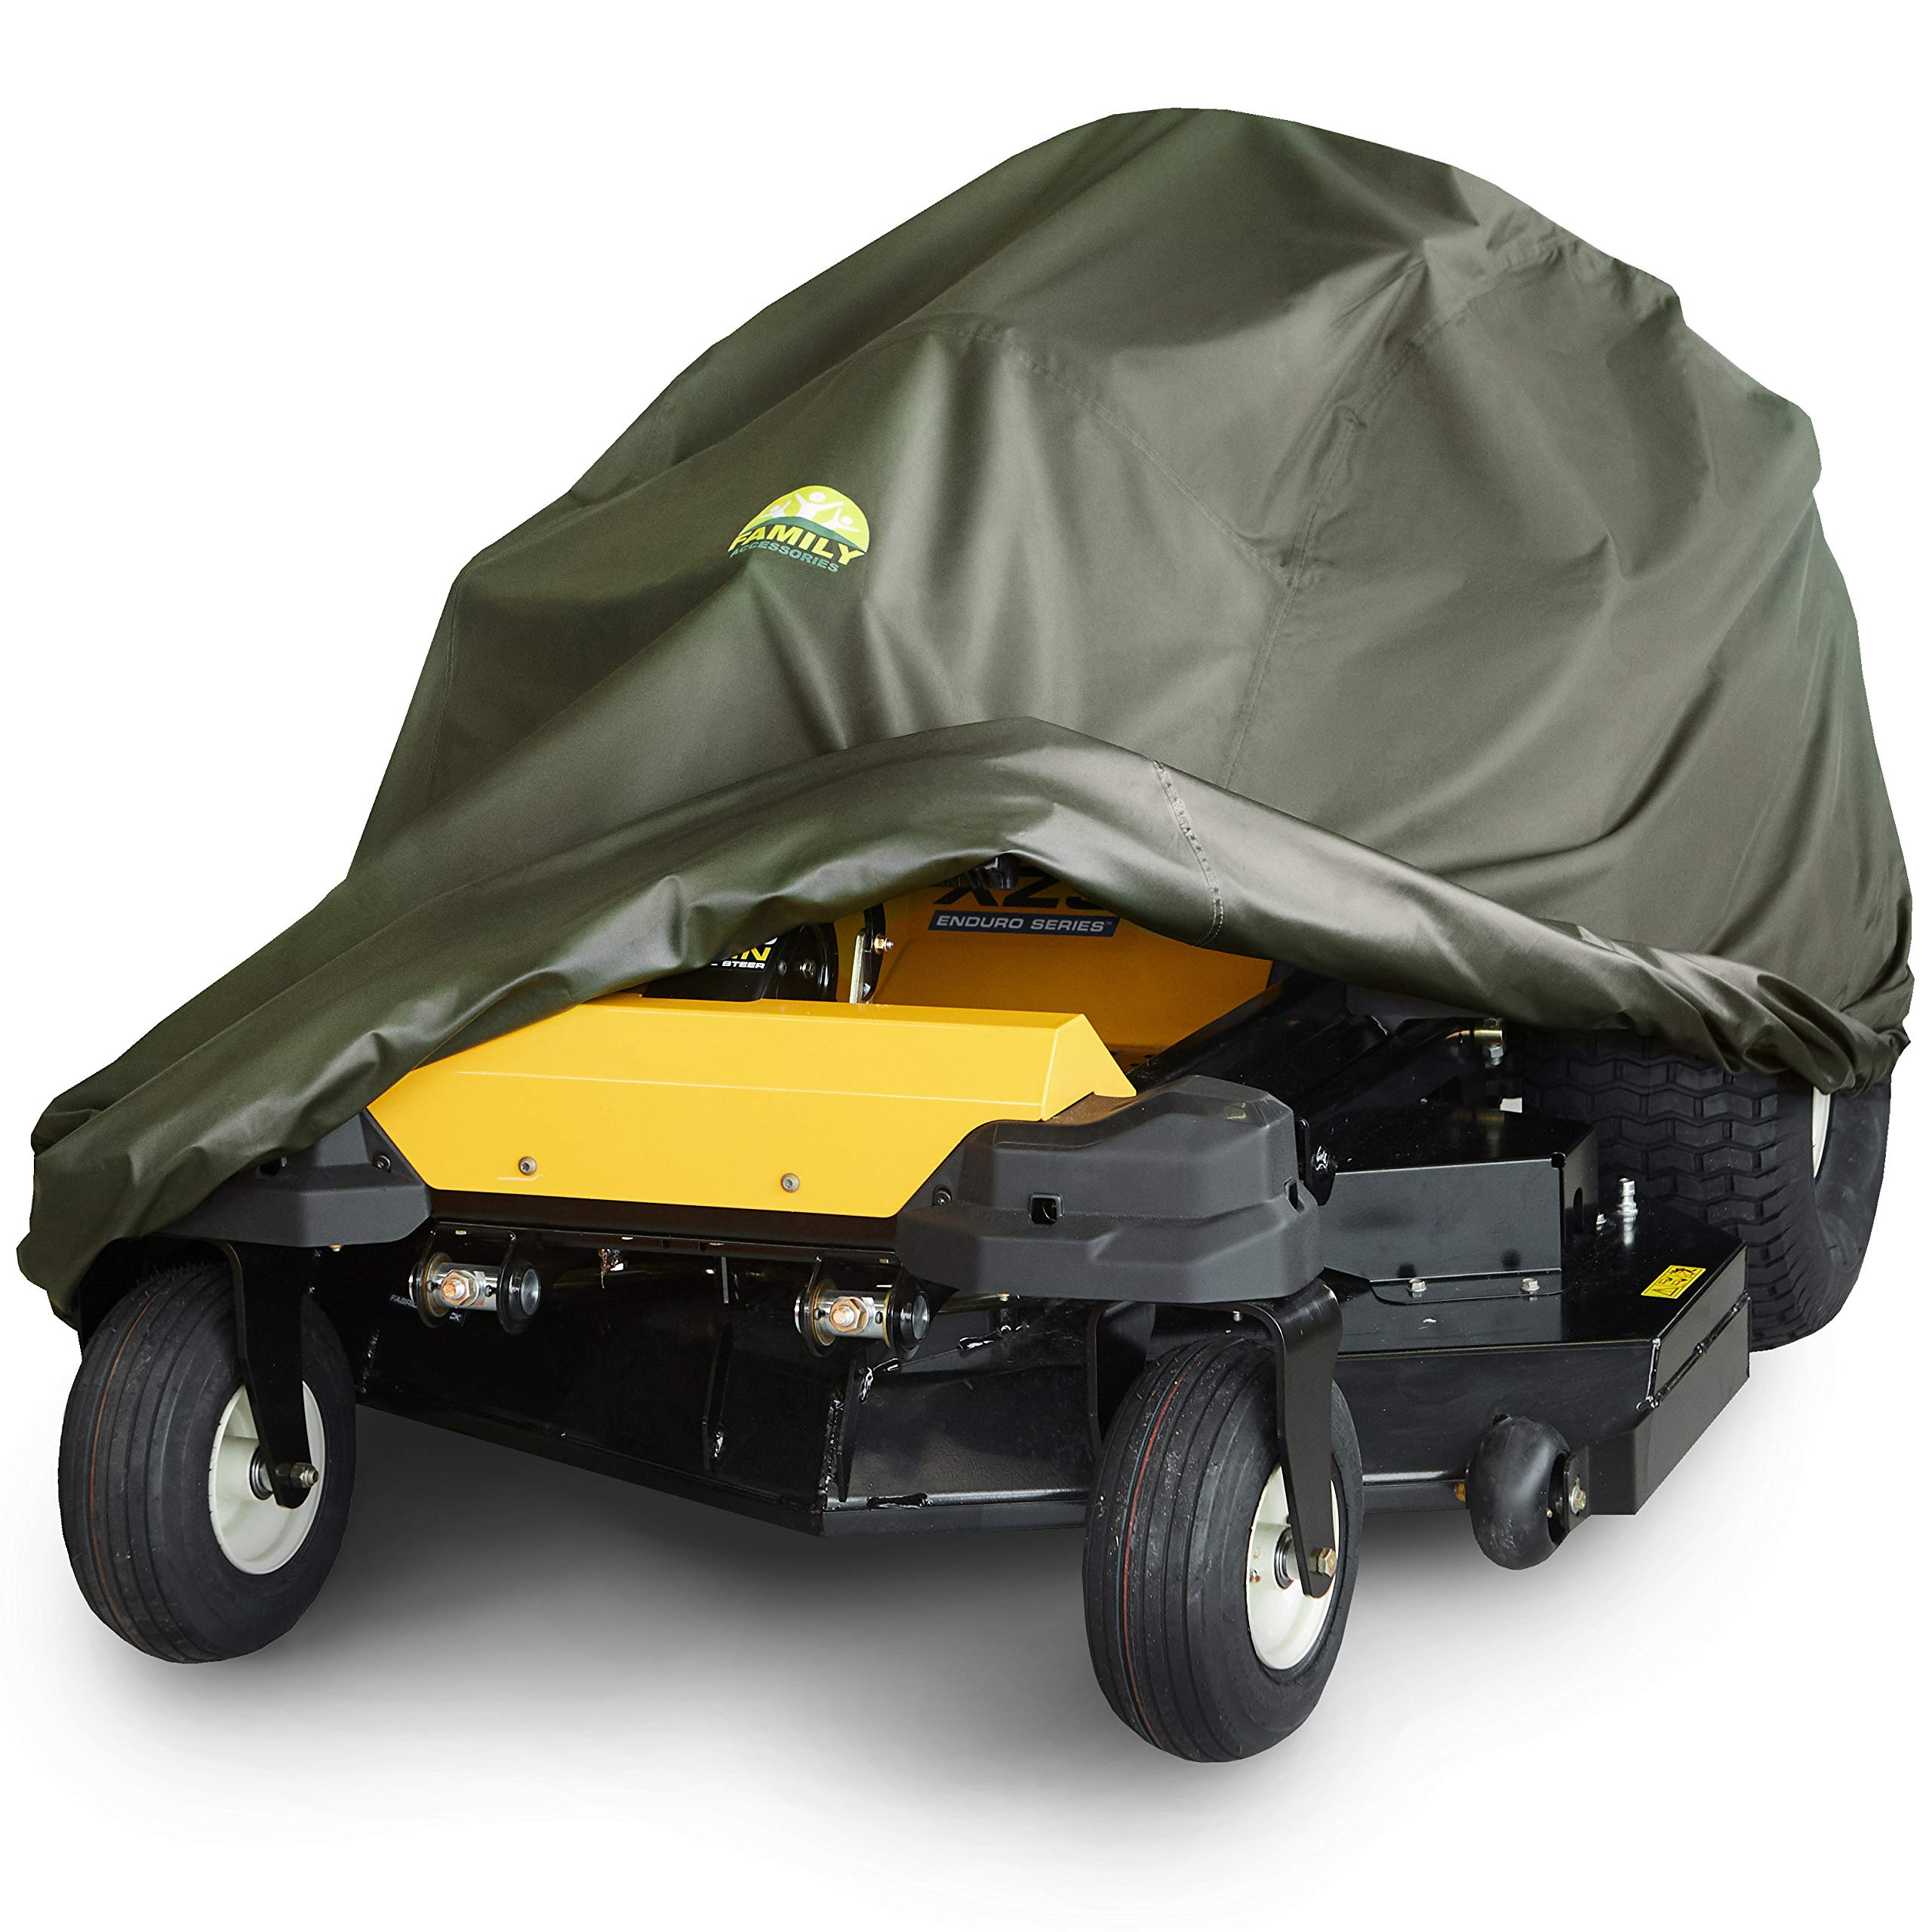 Family Accessories Waterproof Lawn Mower Cover, Heavy Duty, Durable, UV and Water Resistant Cover for Your Riding Garden Tractor (Zero Turn L79 xW46 xH55)